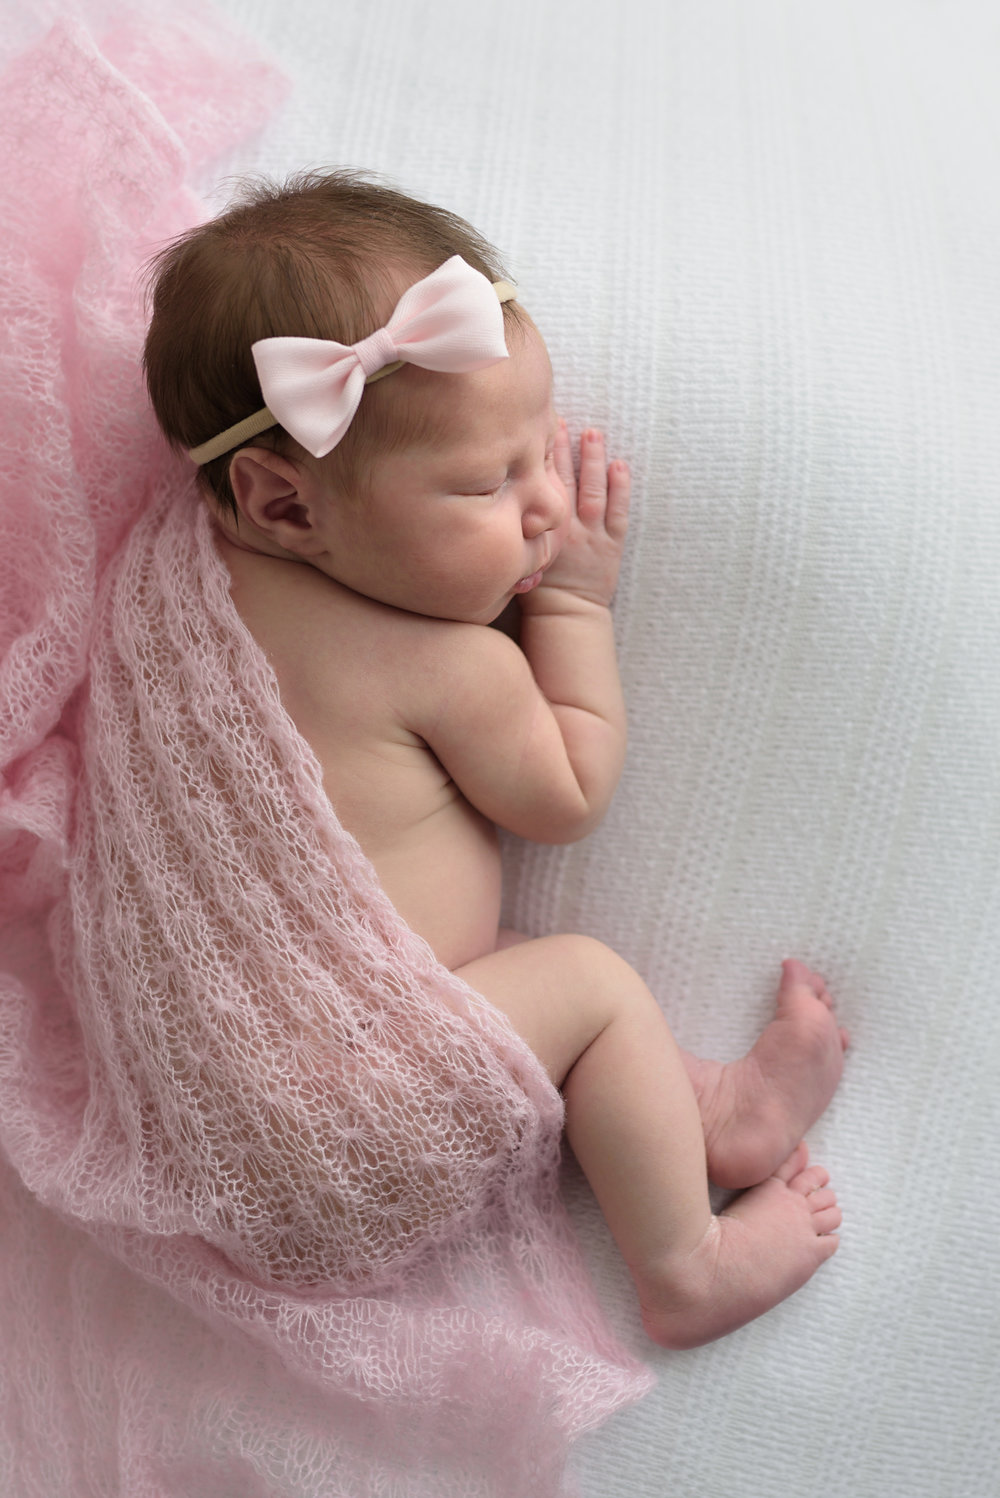 Charleston-Newborn-Photographer-Following-Seas-Photography-fsp_5280 copy.jpg